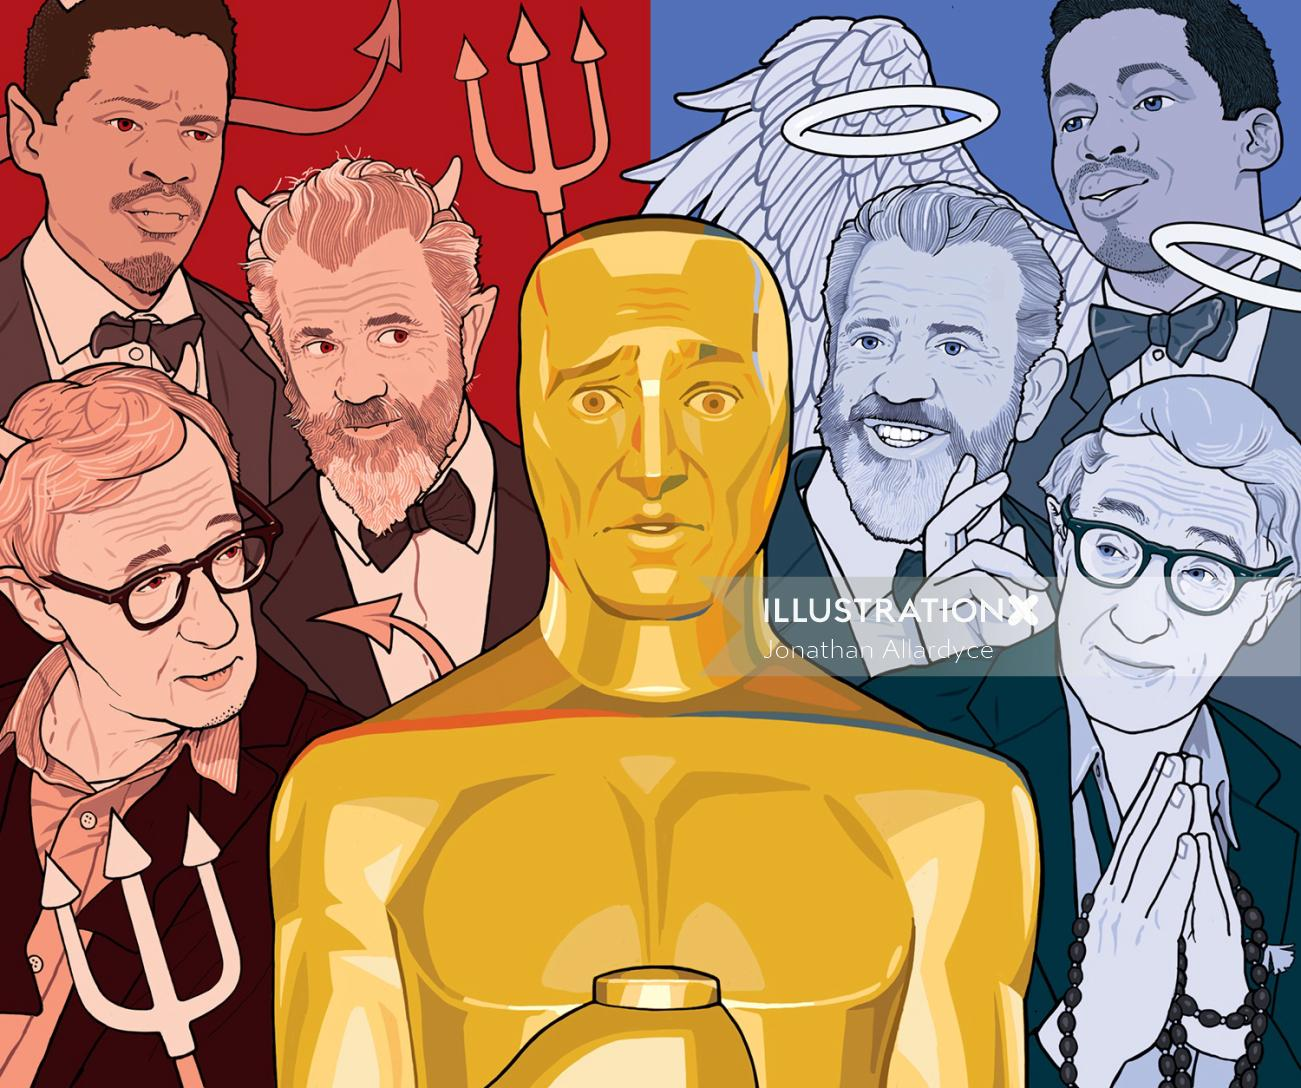 Controversial Oscar nominations illustration